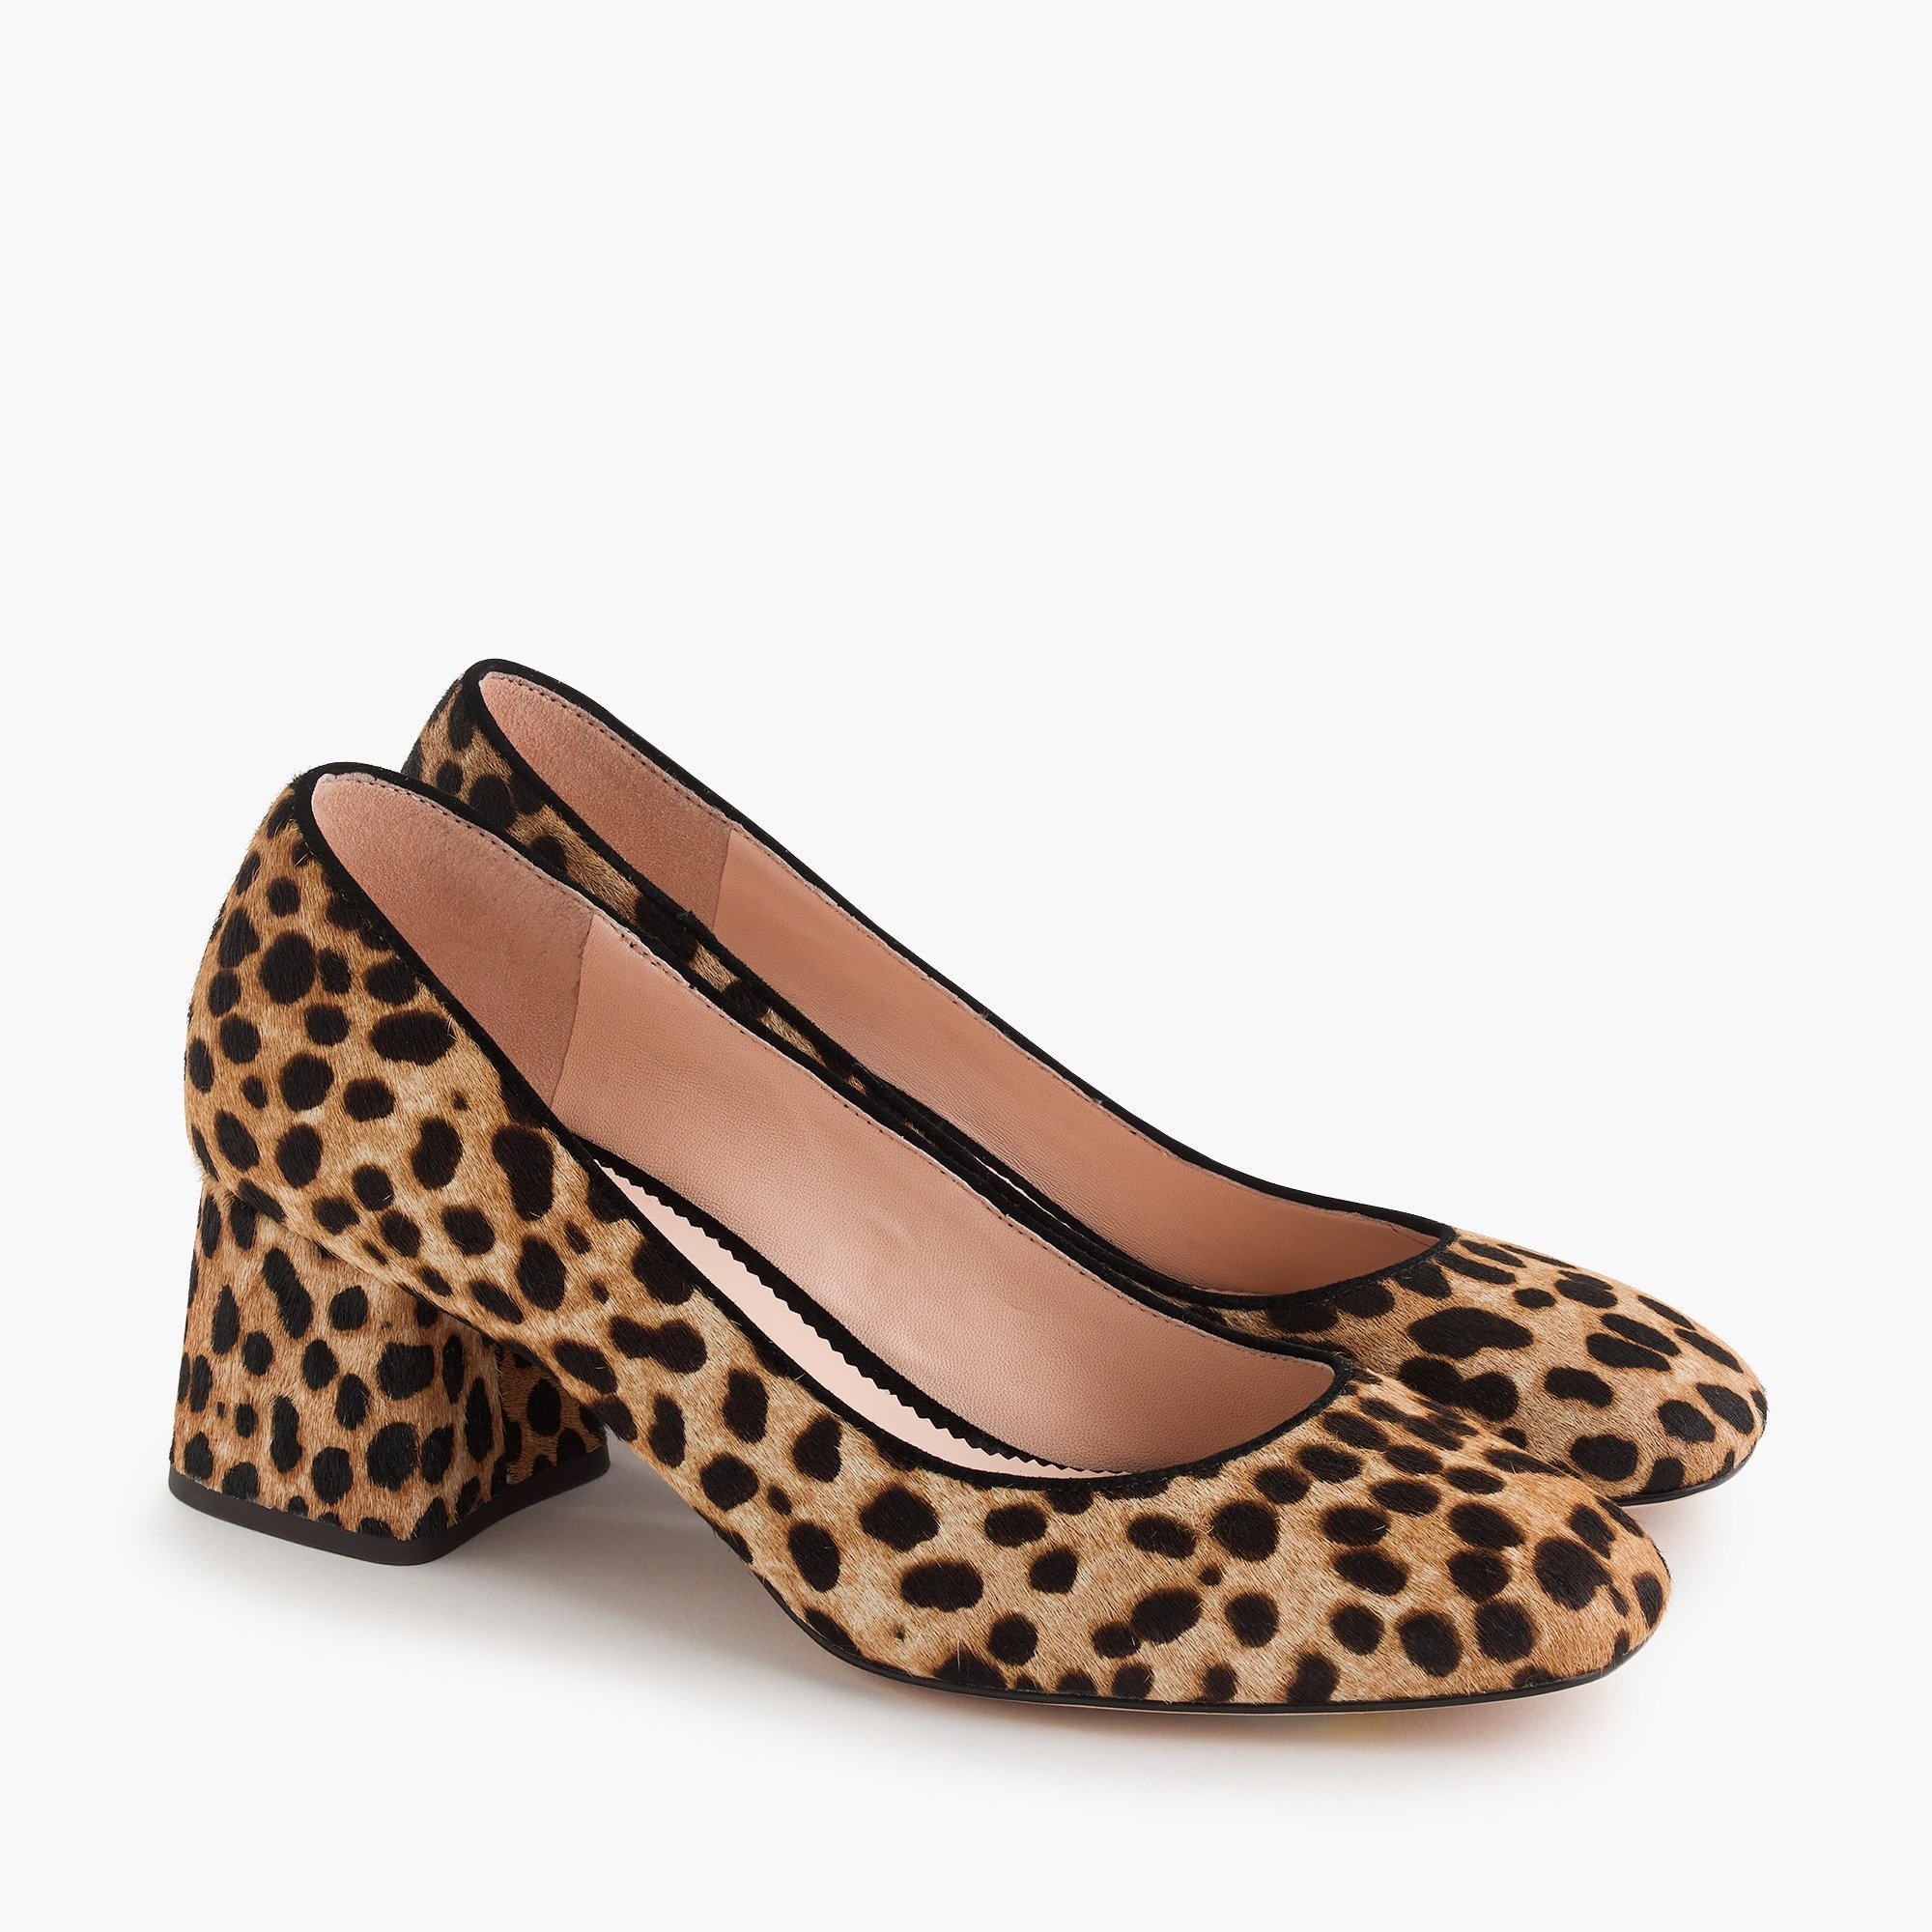 womens Block-heel pumps in leopard